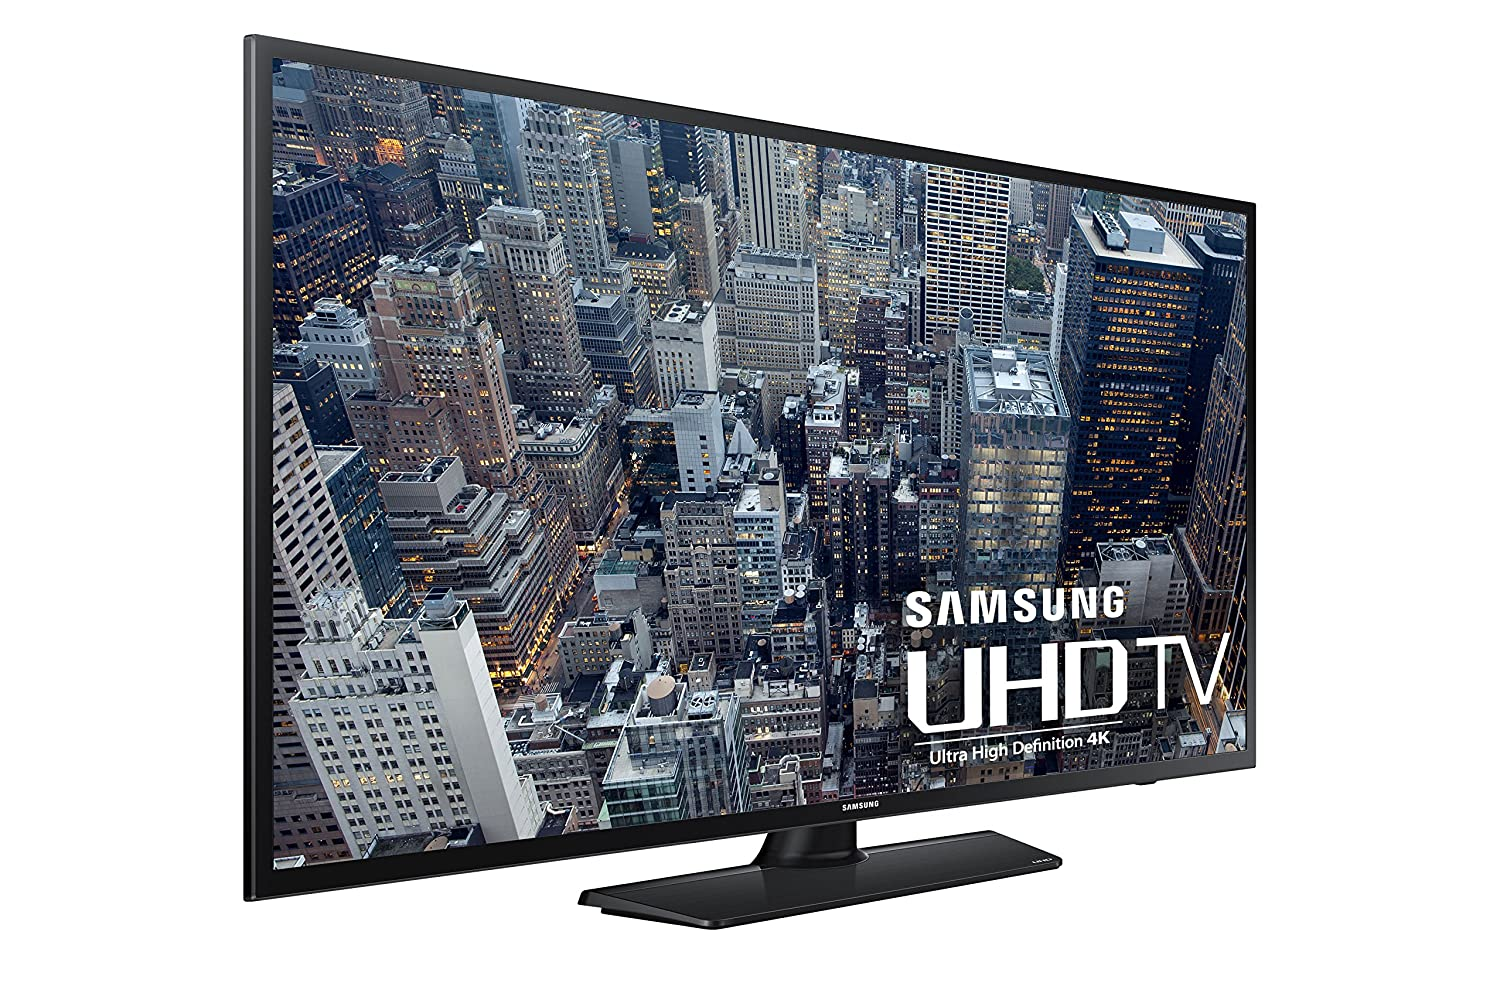 SAMSUNG UN40H6400AF LED TV WINDOWS DRIVER DOWNLOAD